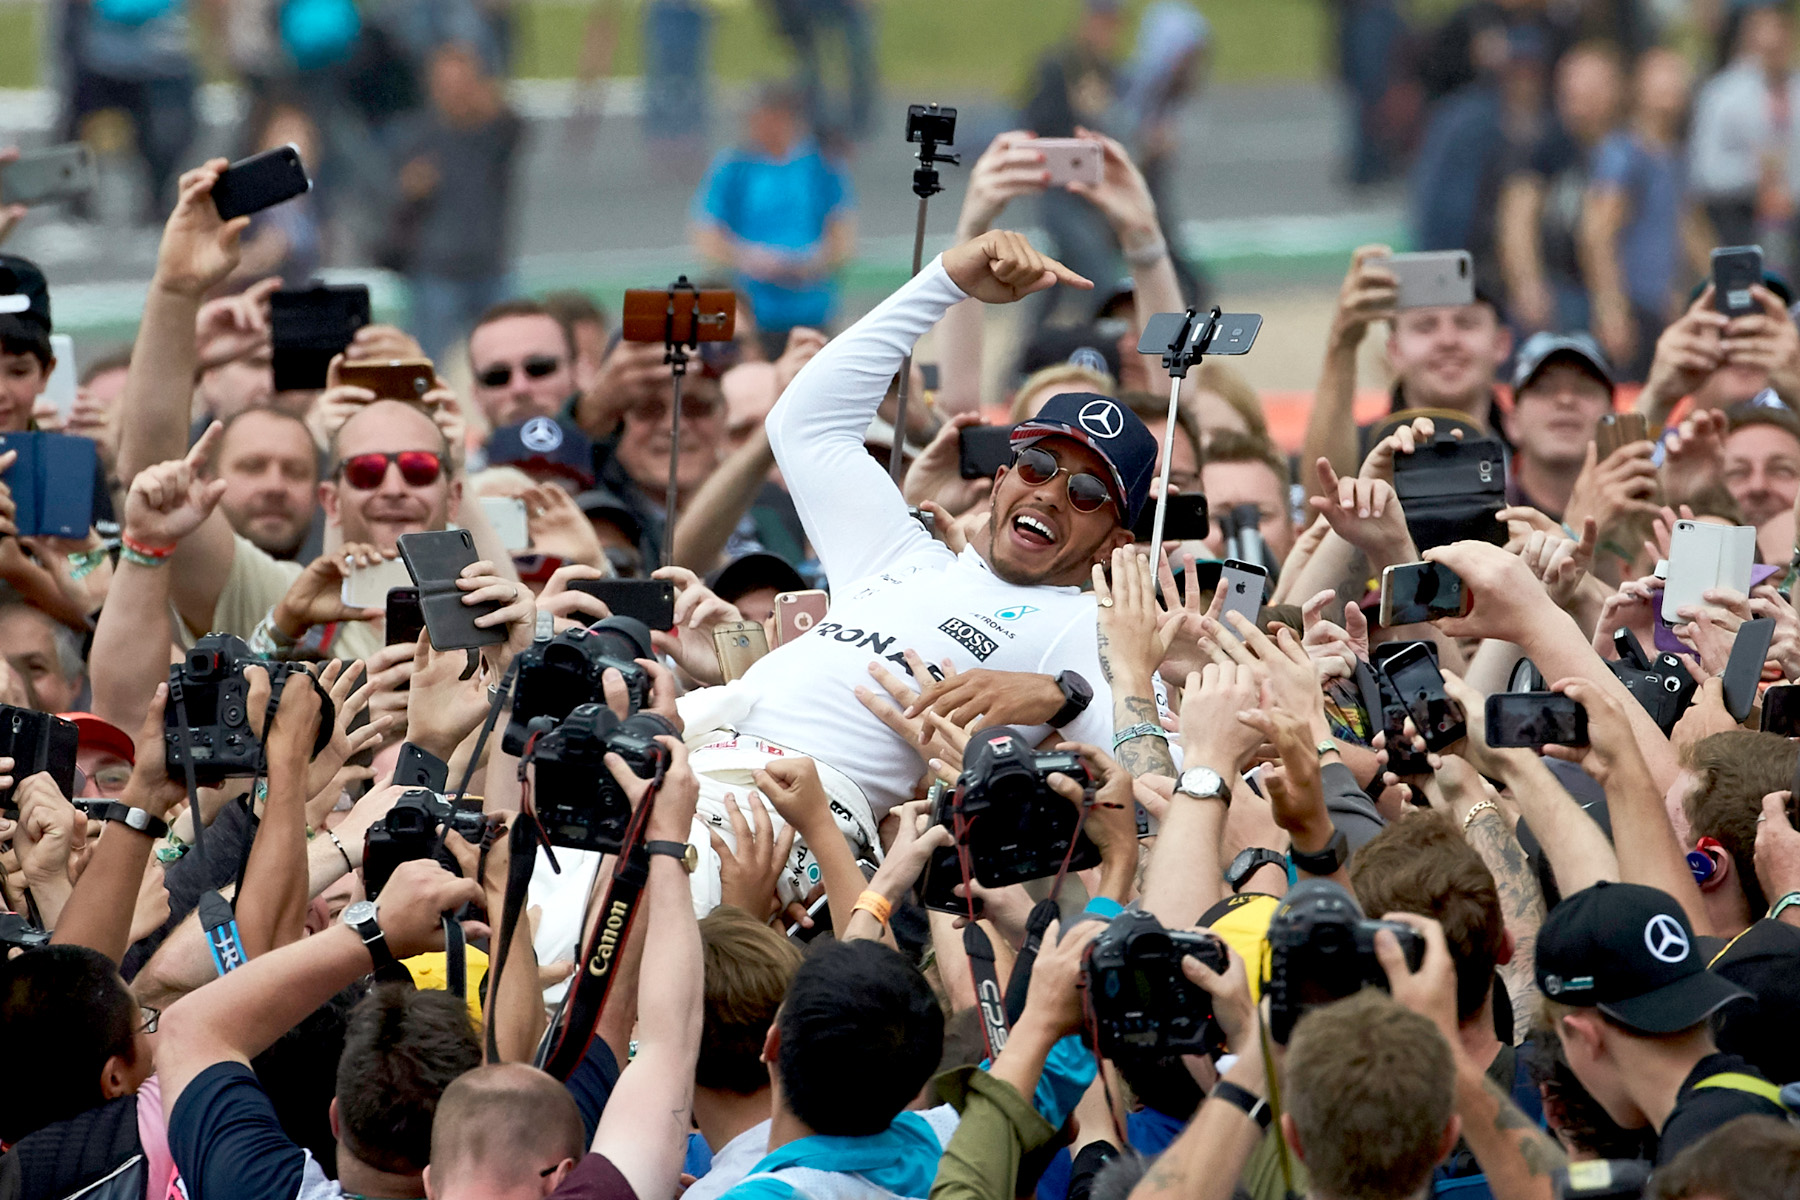 Lewis Hamilton surfs the crowd afeer winning the 2017 British Grand Prix.